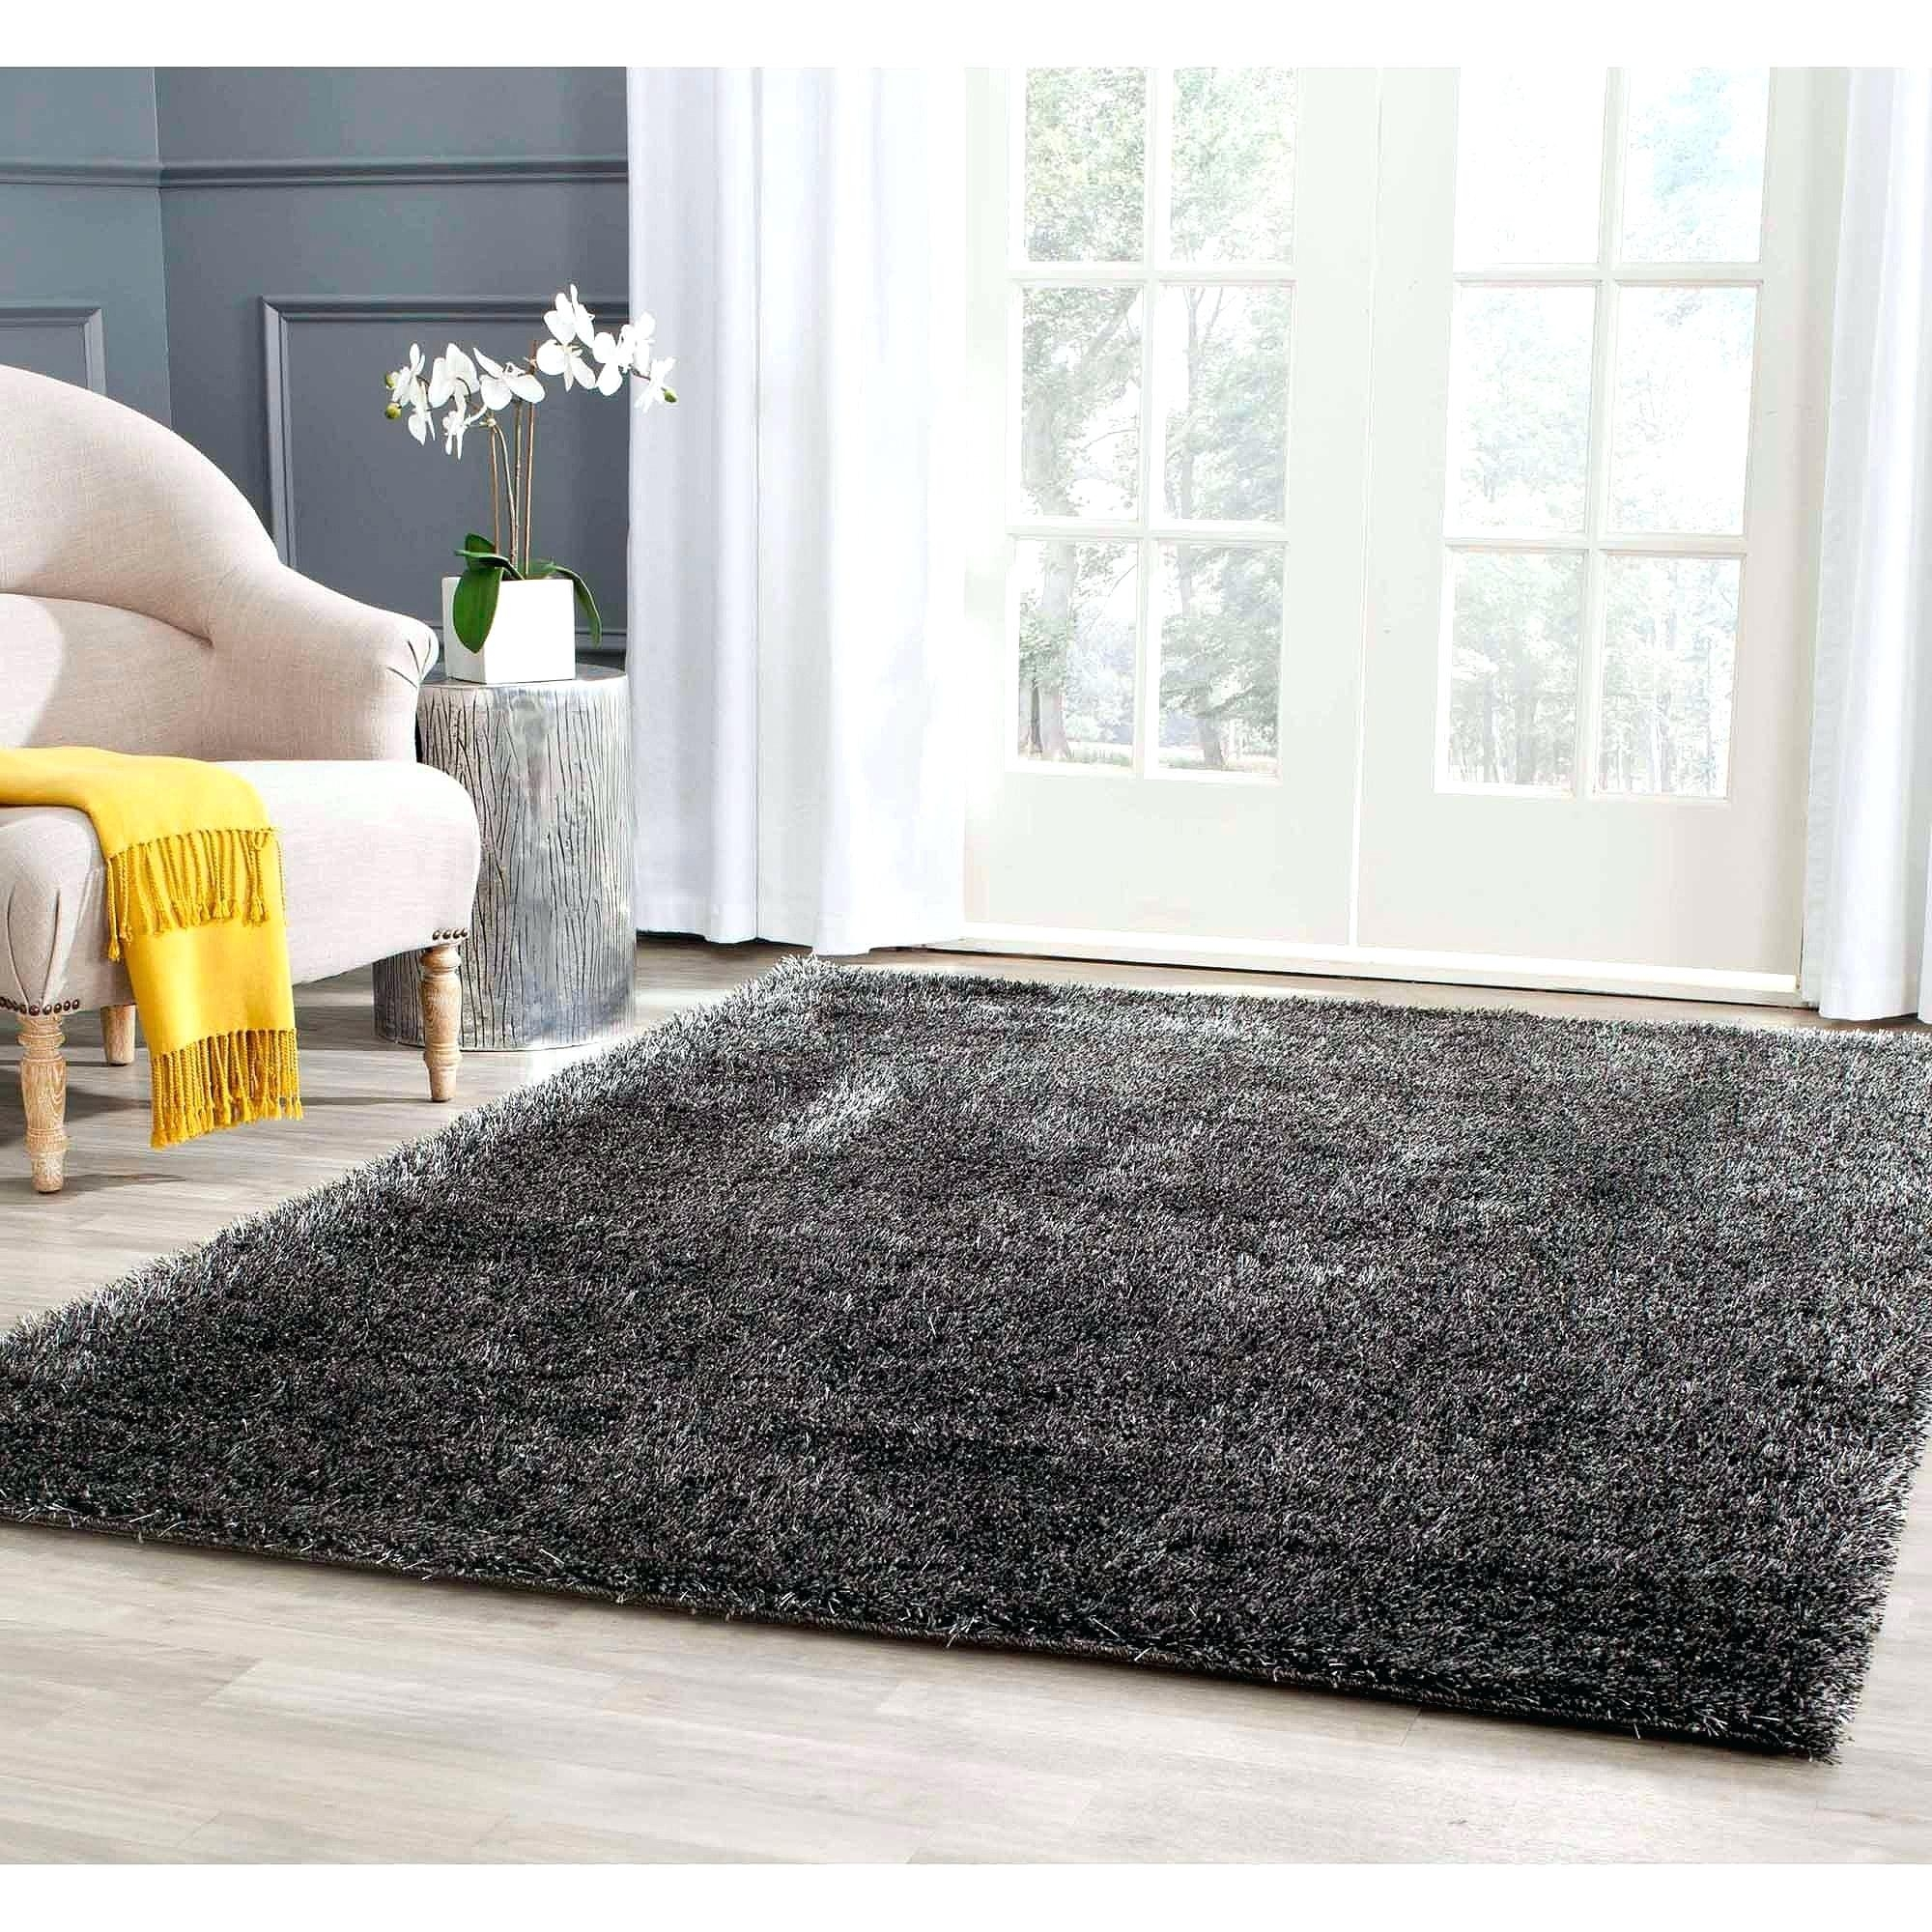 Wool Berber Area Rugs 1014 Area Rugs Area Rugs Walmart 810 Rugs With Regard To Wool Area Rugs 10× (#15 of 15)